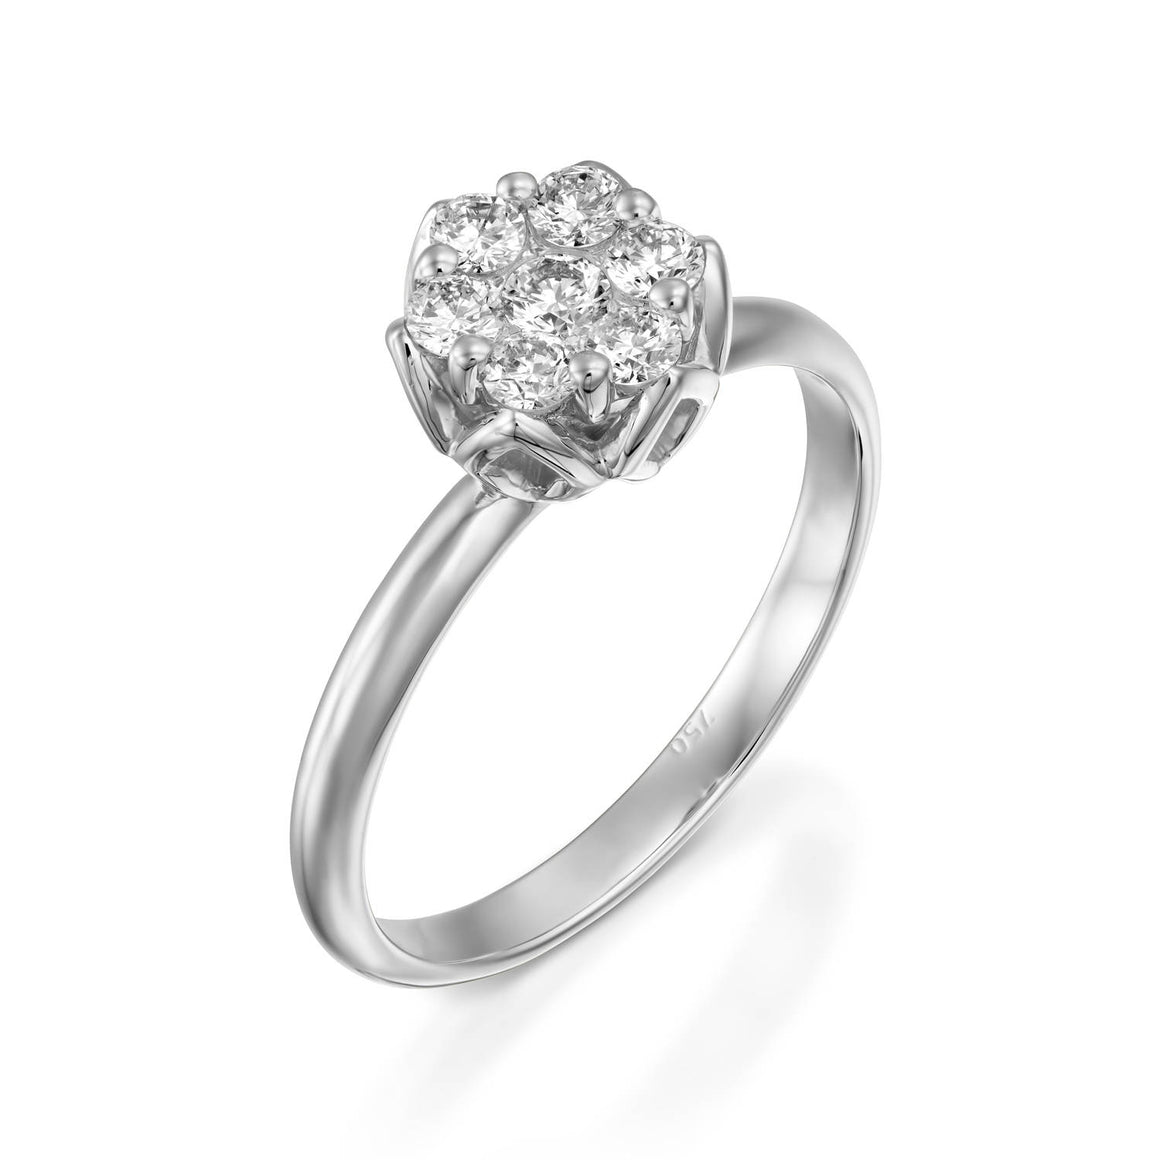 White Gold flower diamonds  engagement ring for women,